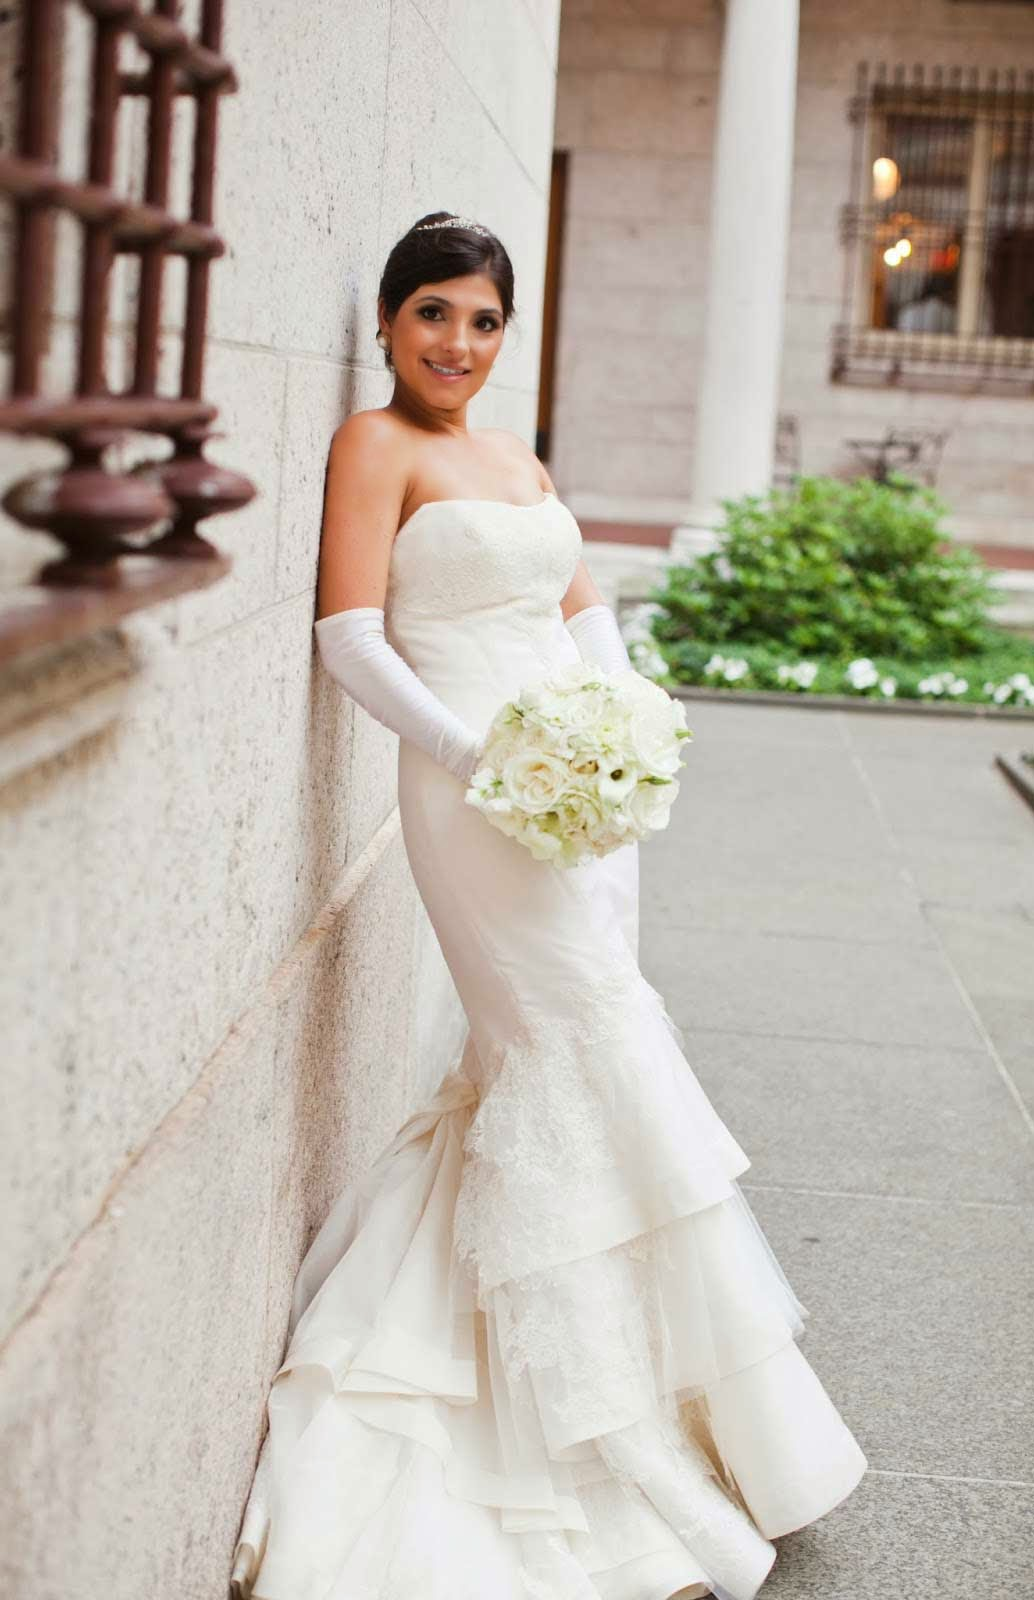 2nd Wedding Wedding Dresses Second Hand Wedding Dress Las Vegas Wedding Bells Dresses